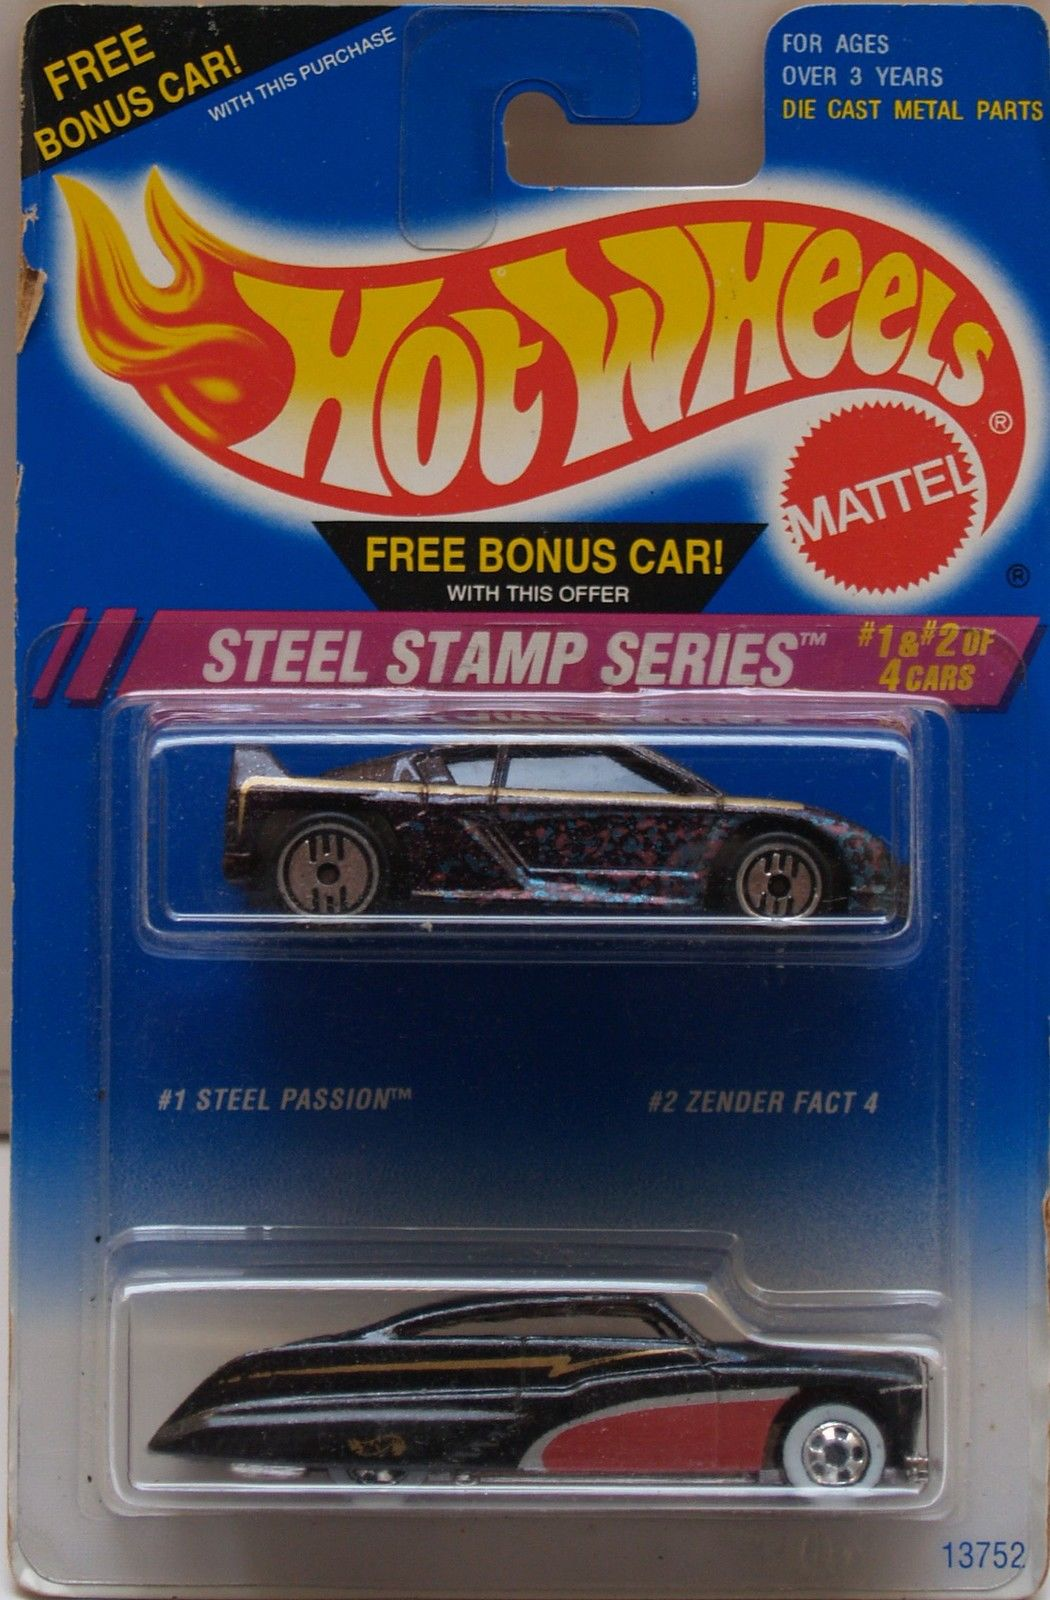 1994 HOT WHEELS - STEEL STAMP SERIES - CARS #1 & #2 - 2 CAR PACK